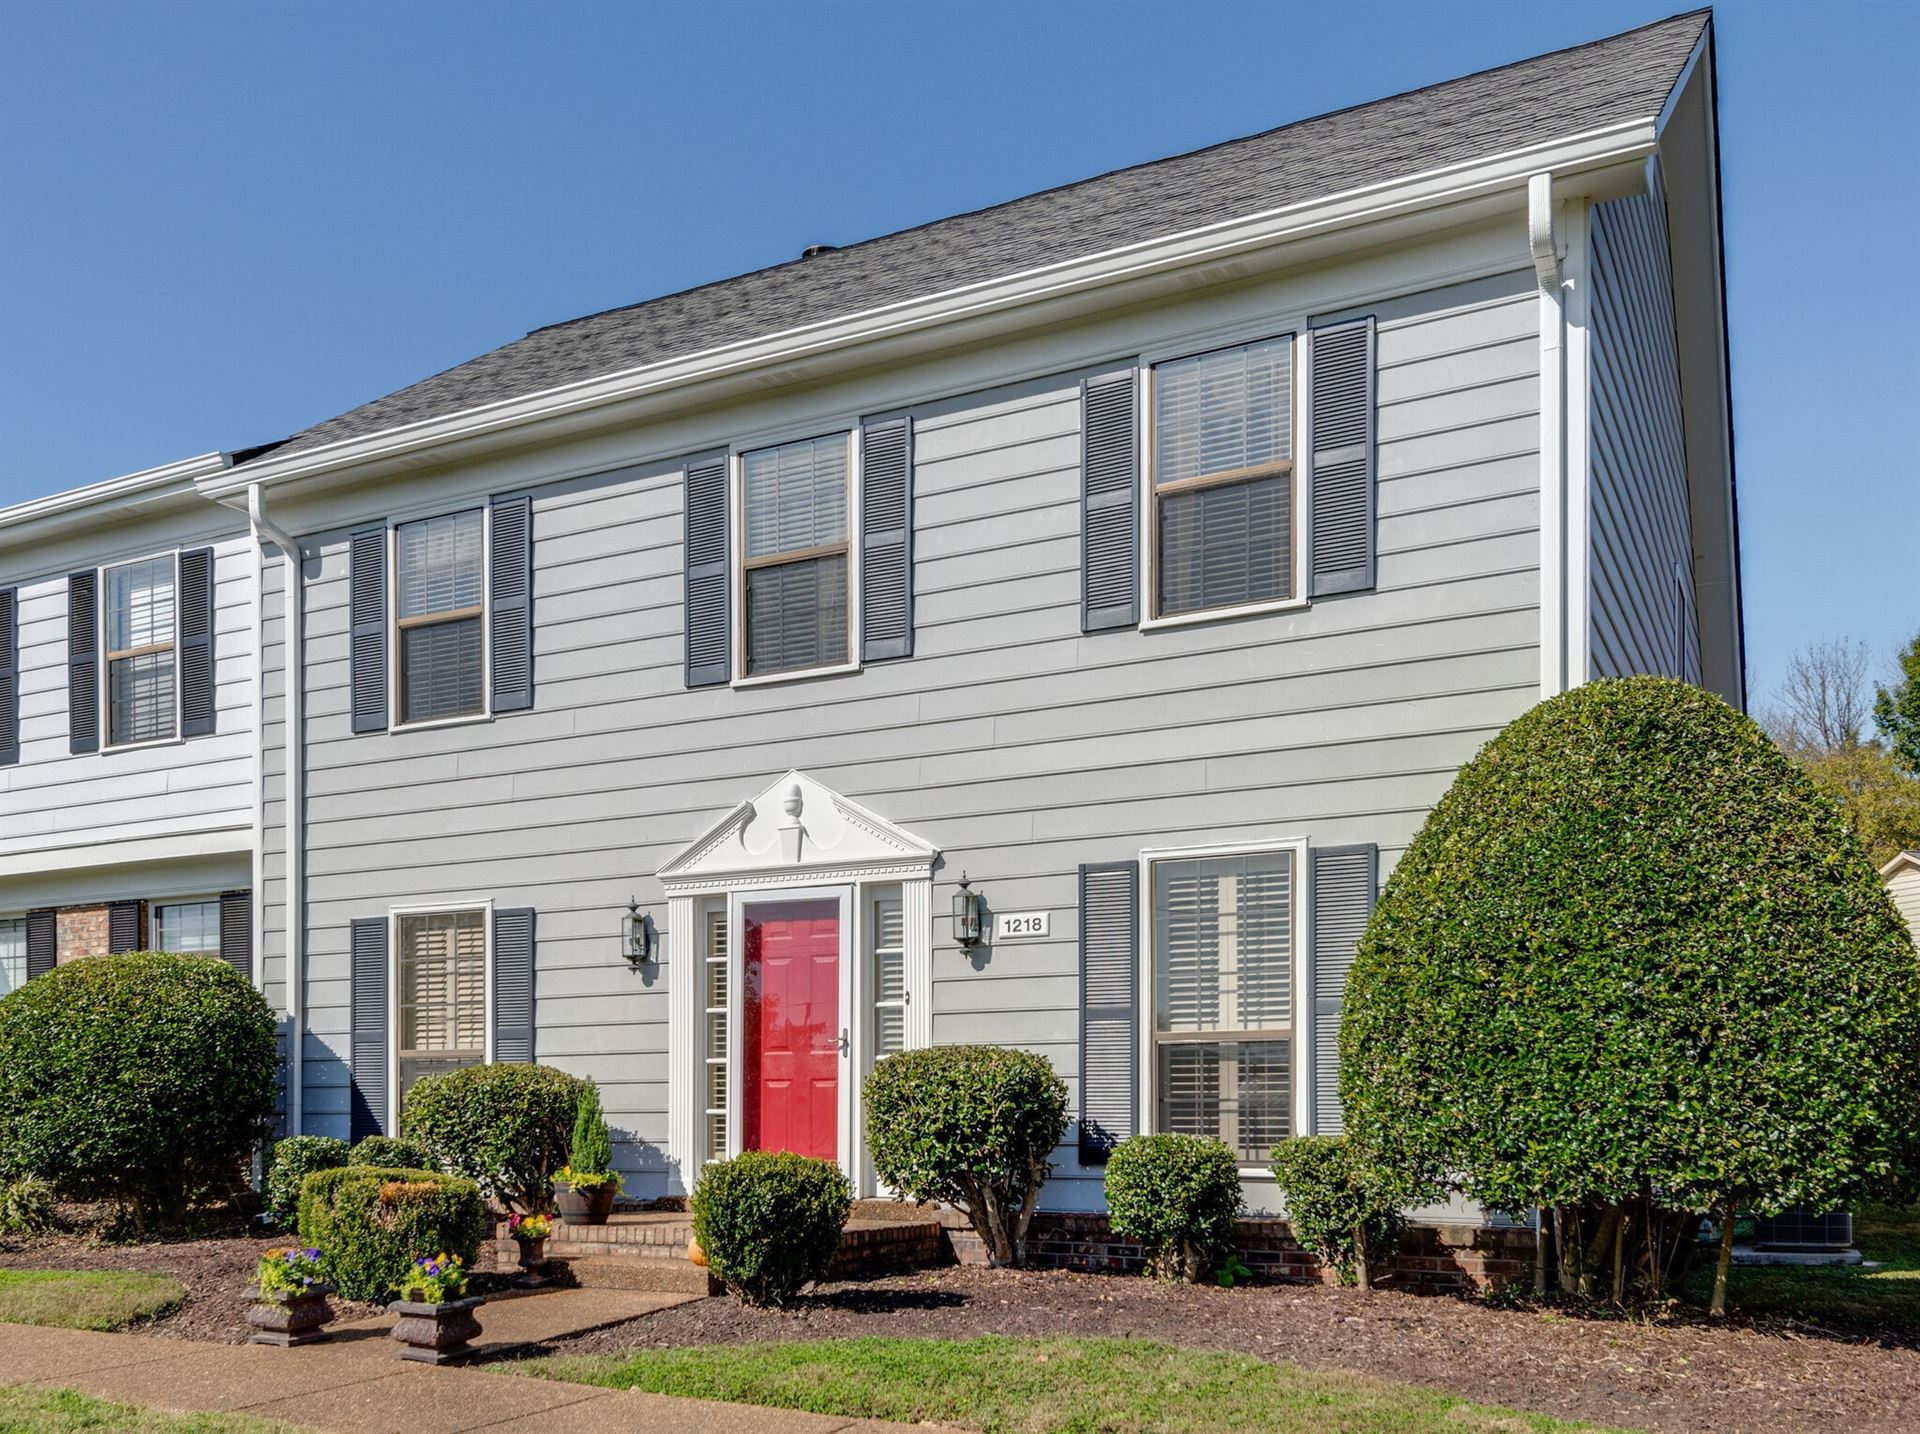 1218 Brentwood Pointe, Brentwood, TN 37027 - MLS#: 2228588